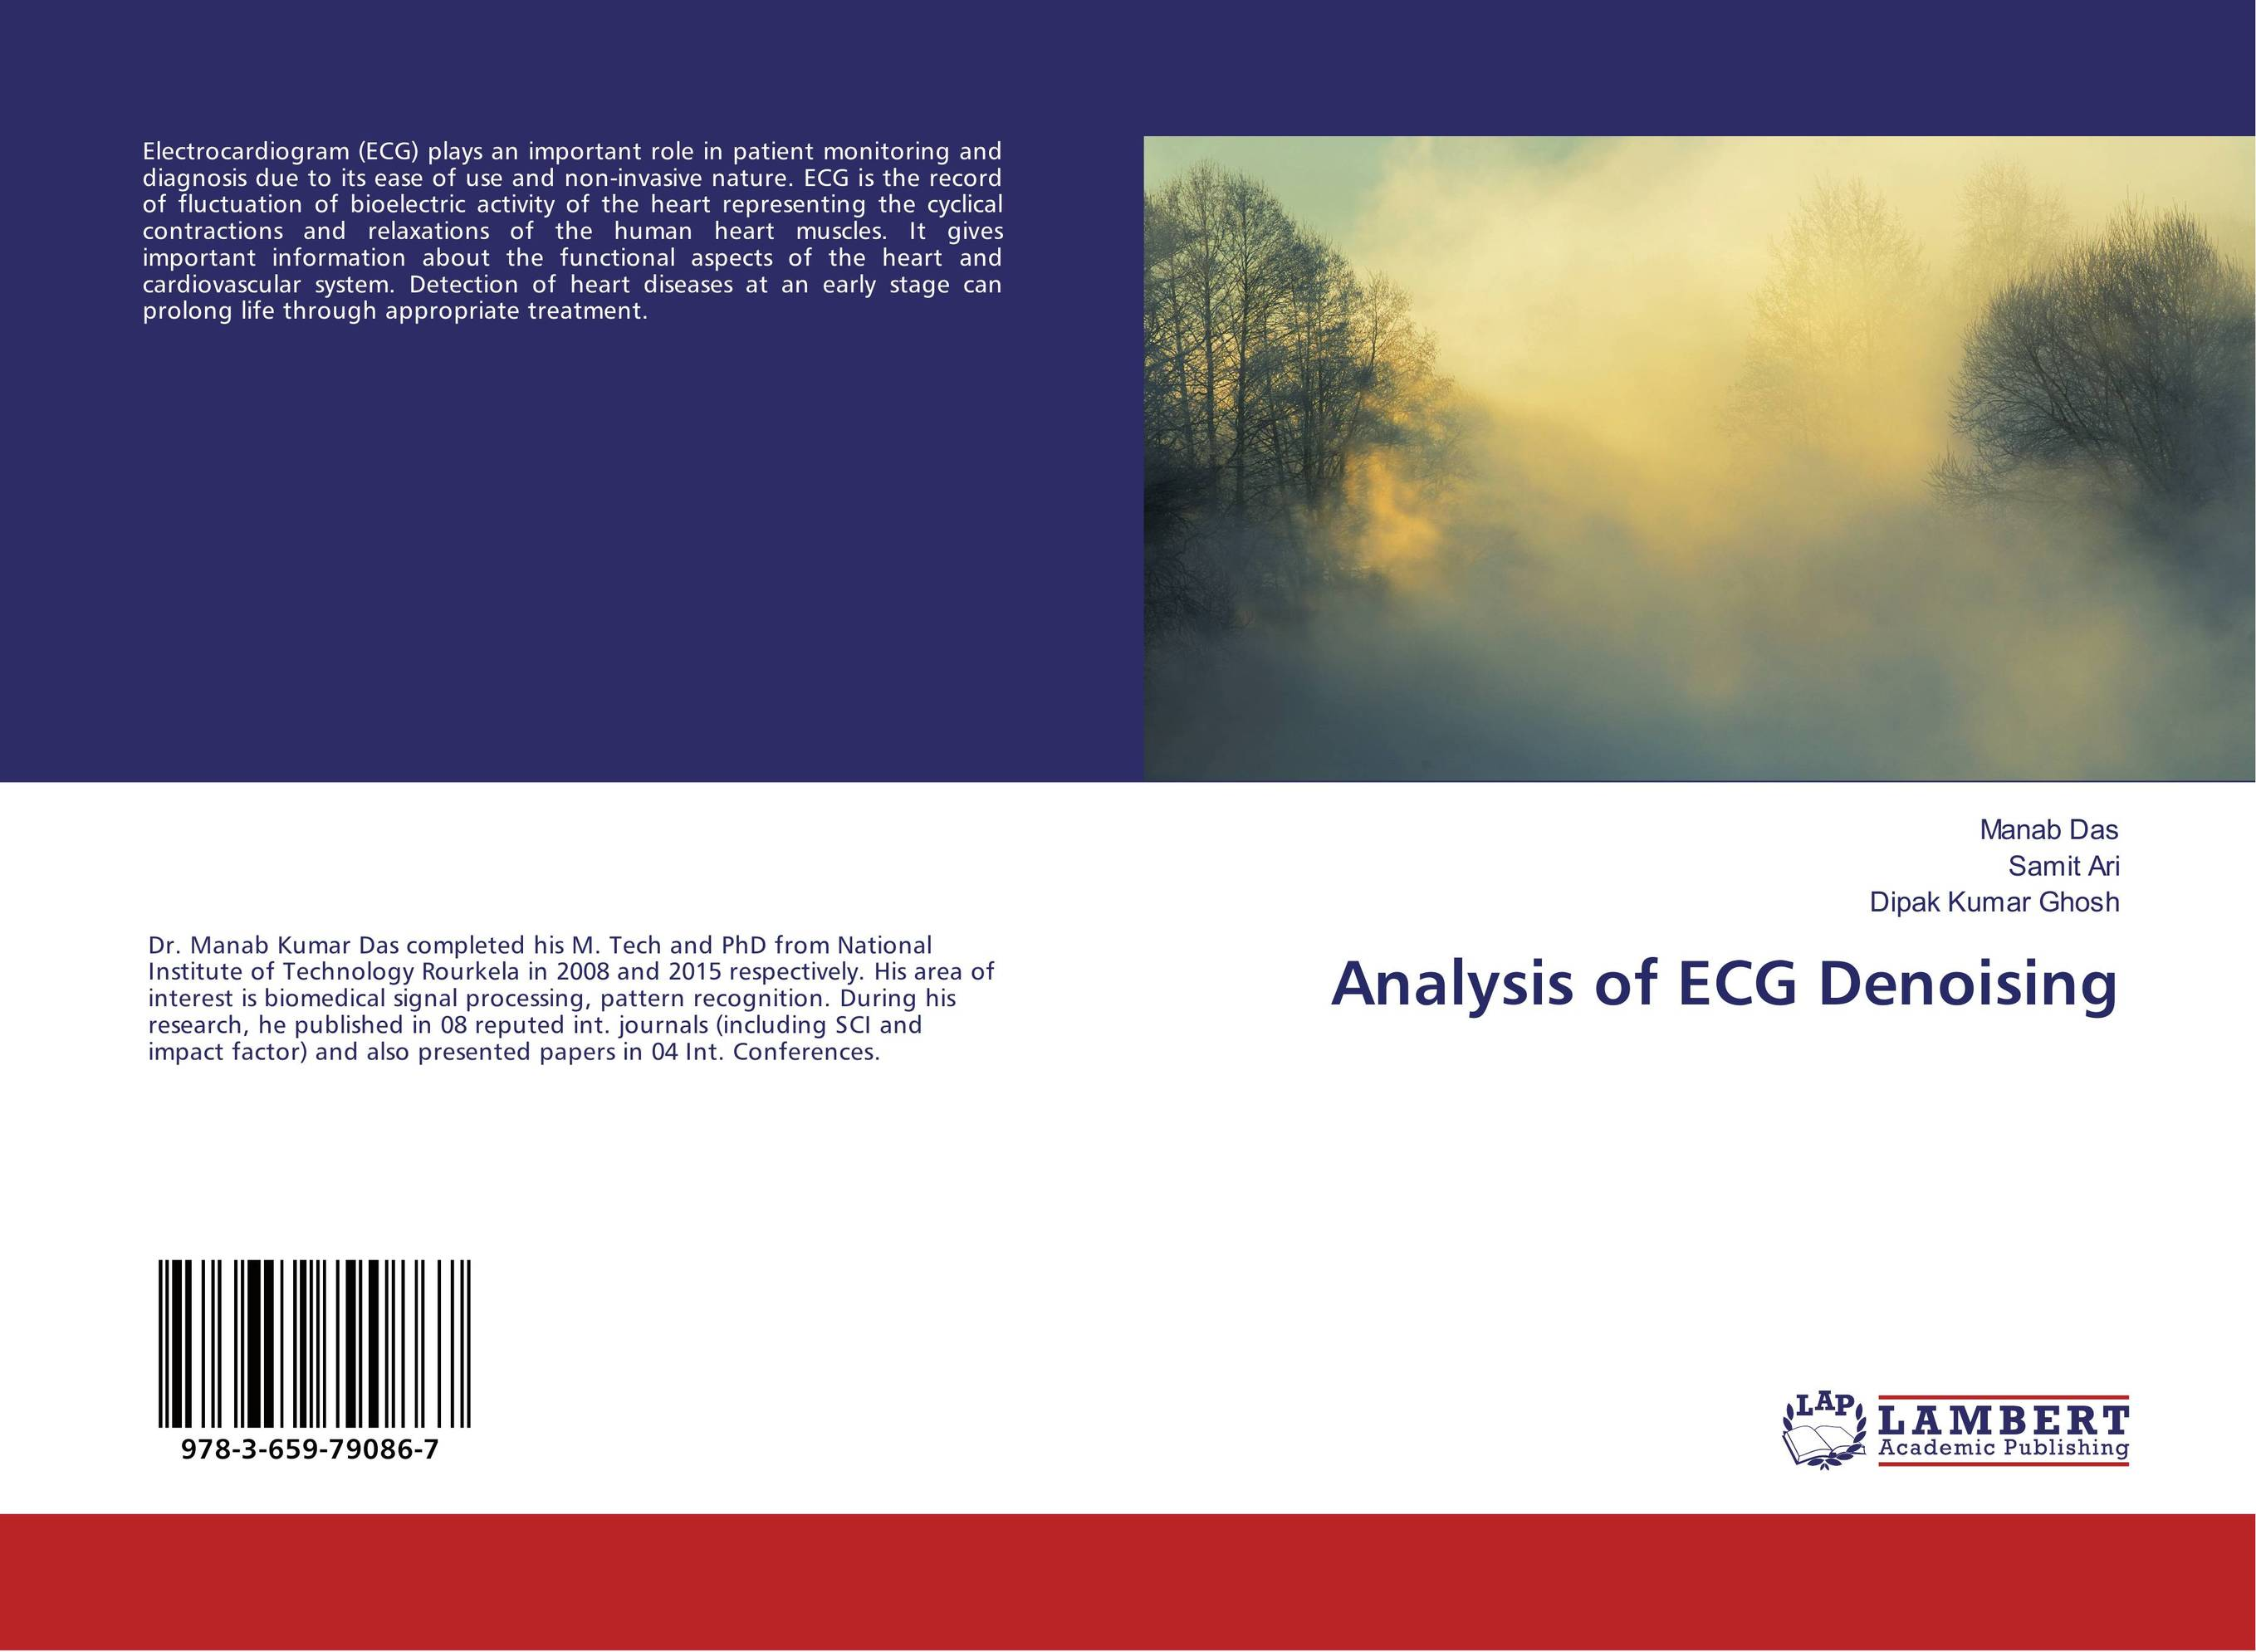 Analysis of ECG Denoising enovo1 1 hi q human heart anatomical model of the heart of the heart physician teaching tools